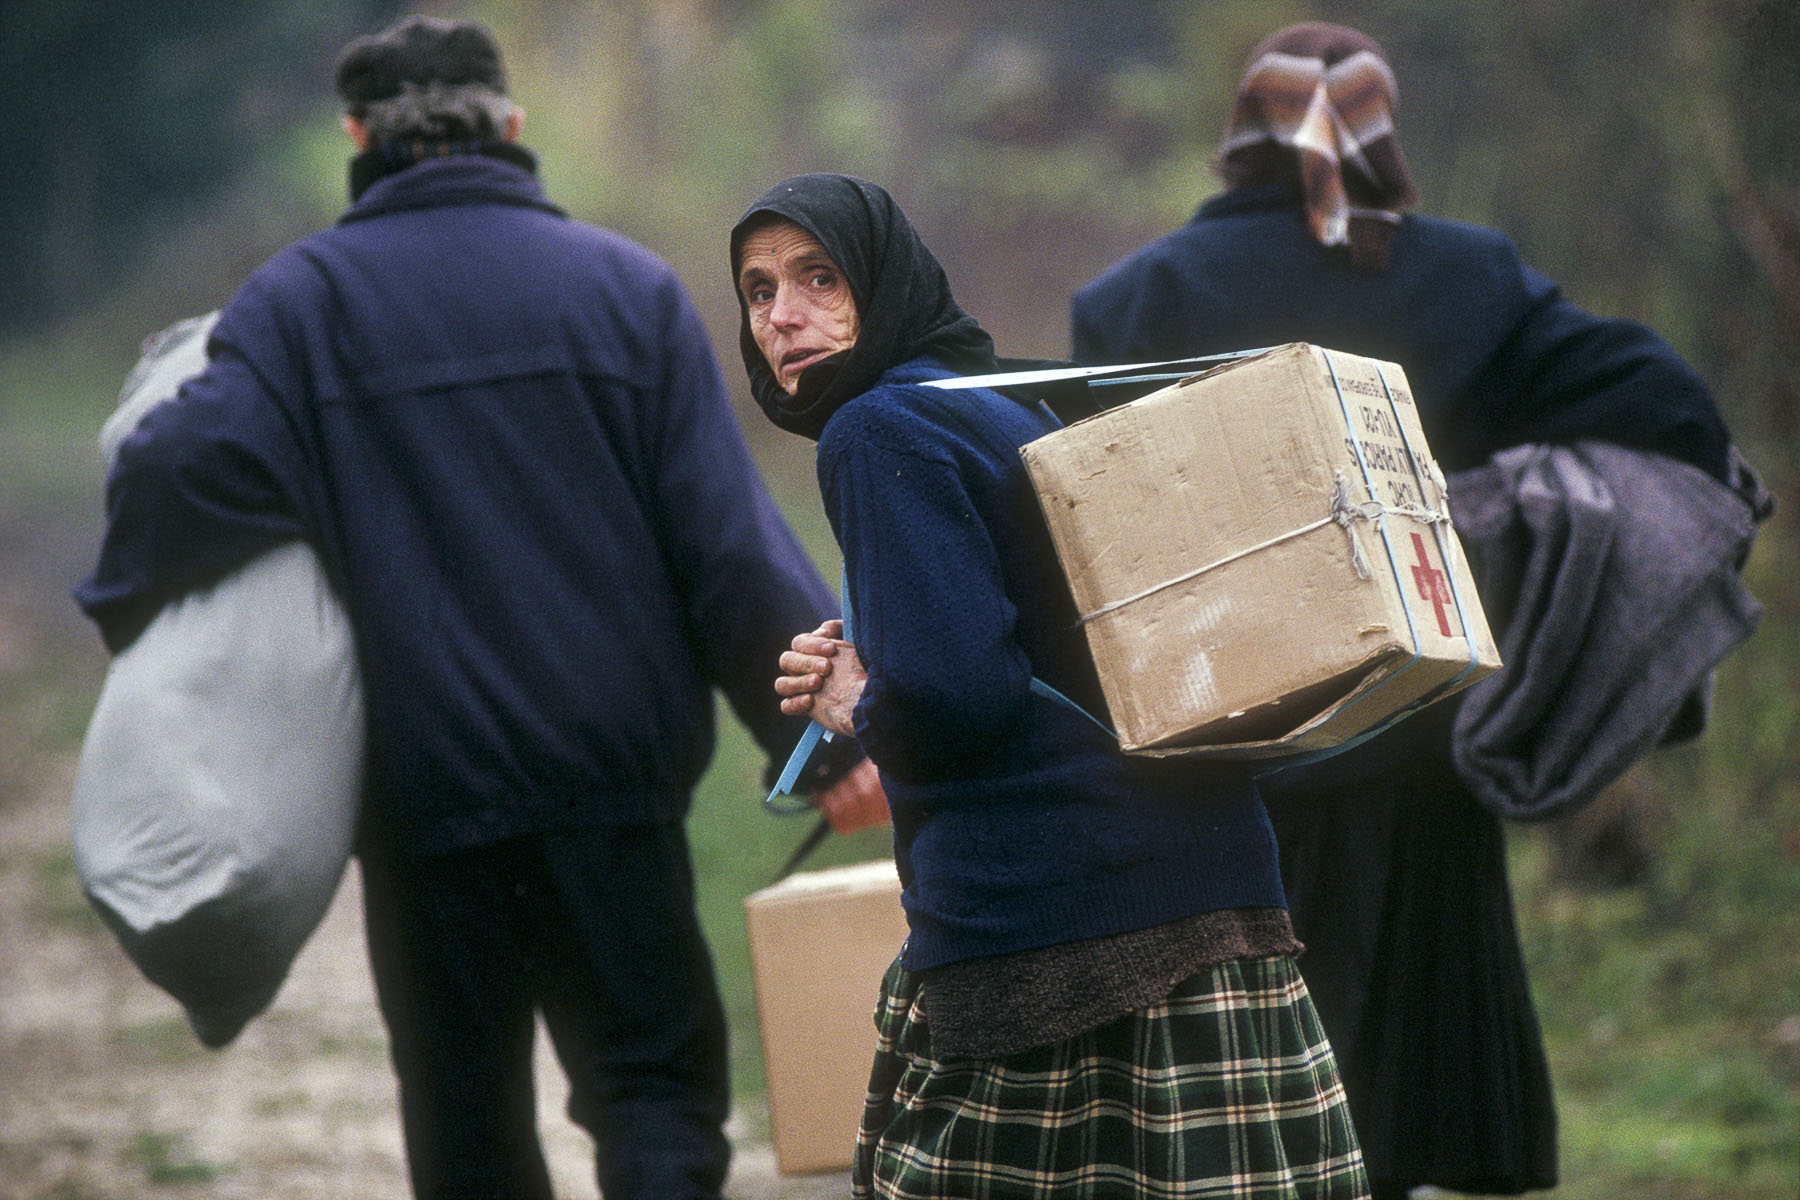 Bosnian refugees after the capture of their village by the Serb militiamen in November 1992